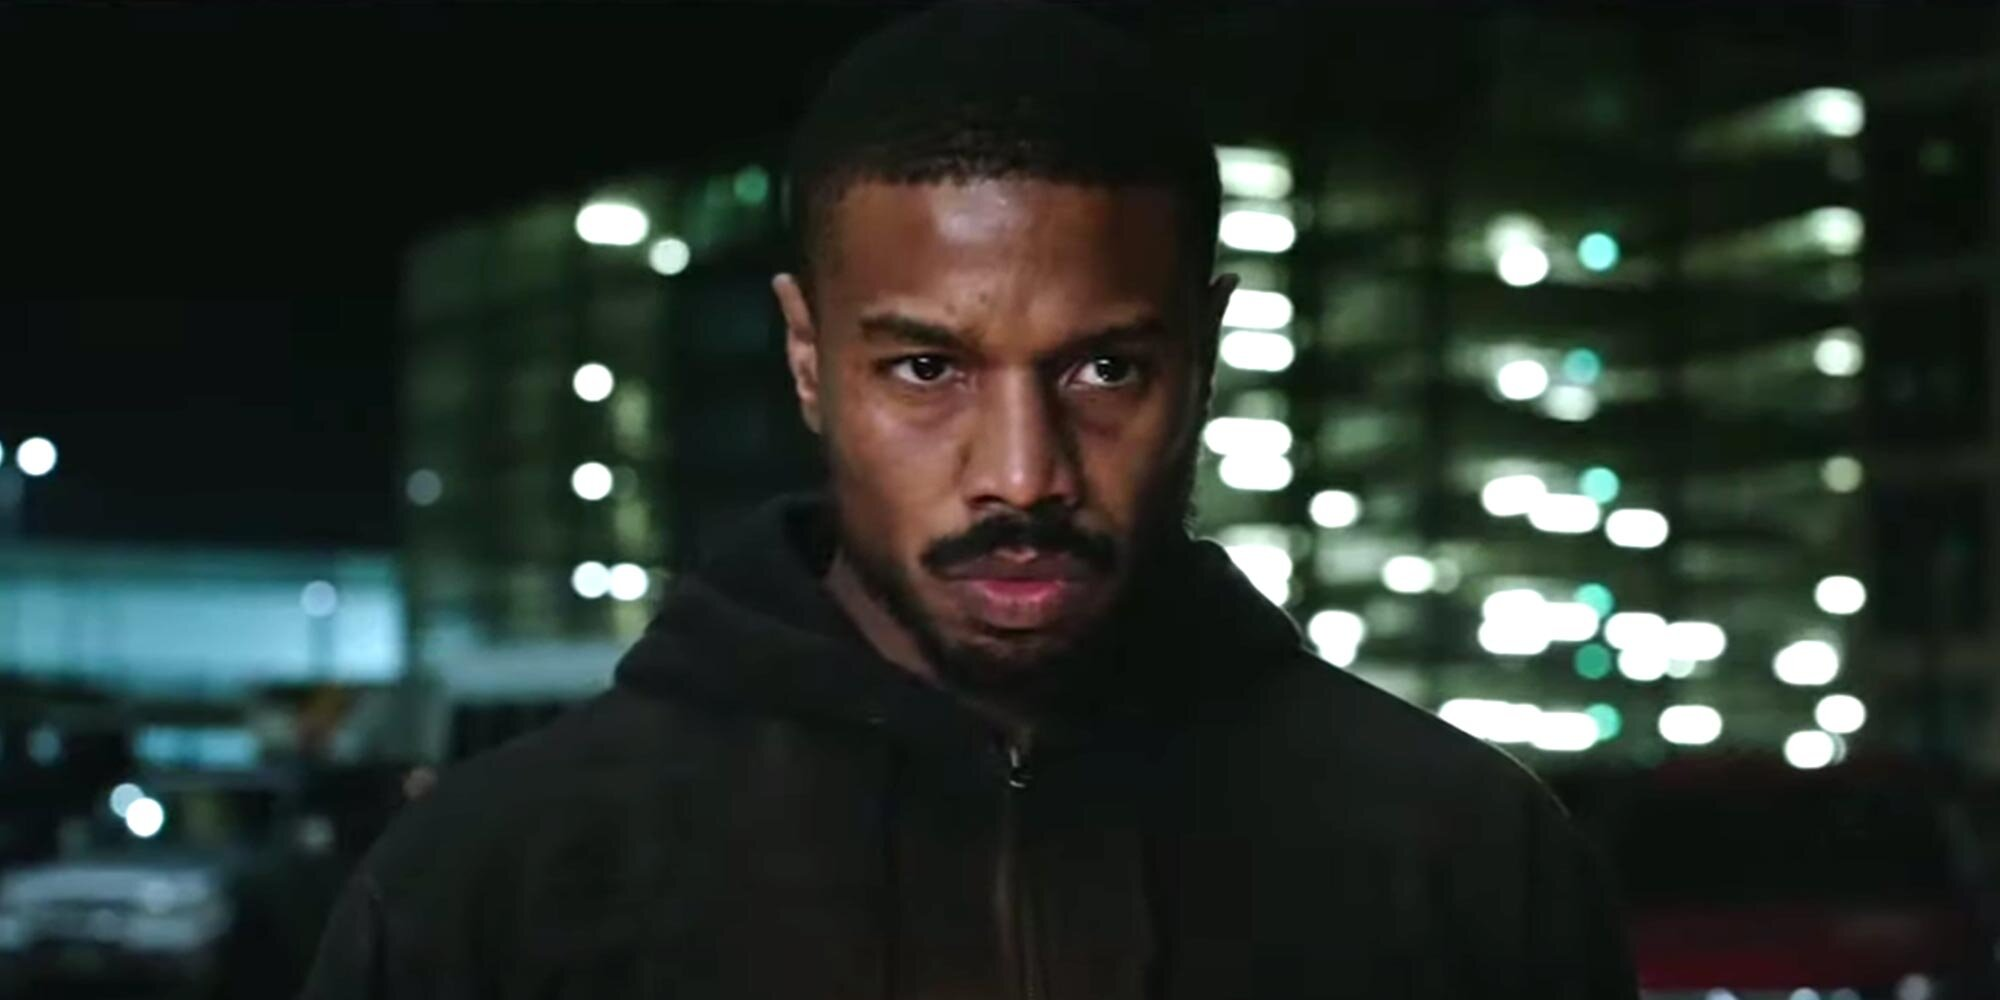 Michael B. Jordan is 'Without Remorse' in first trailer for Tom Clancy thriller